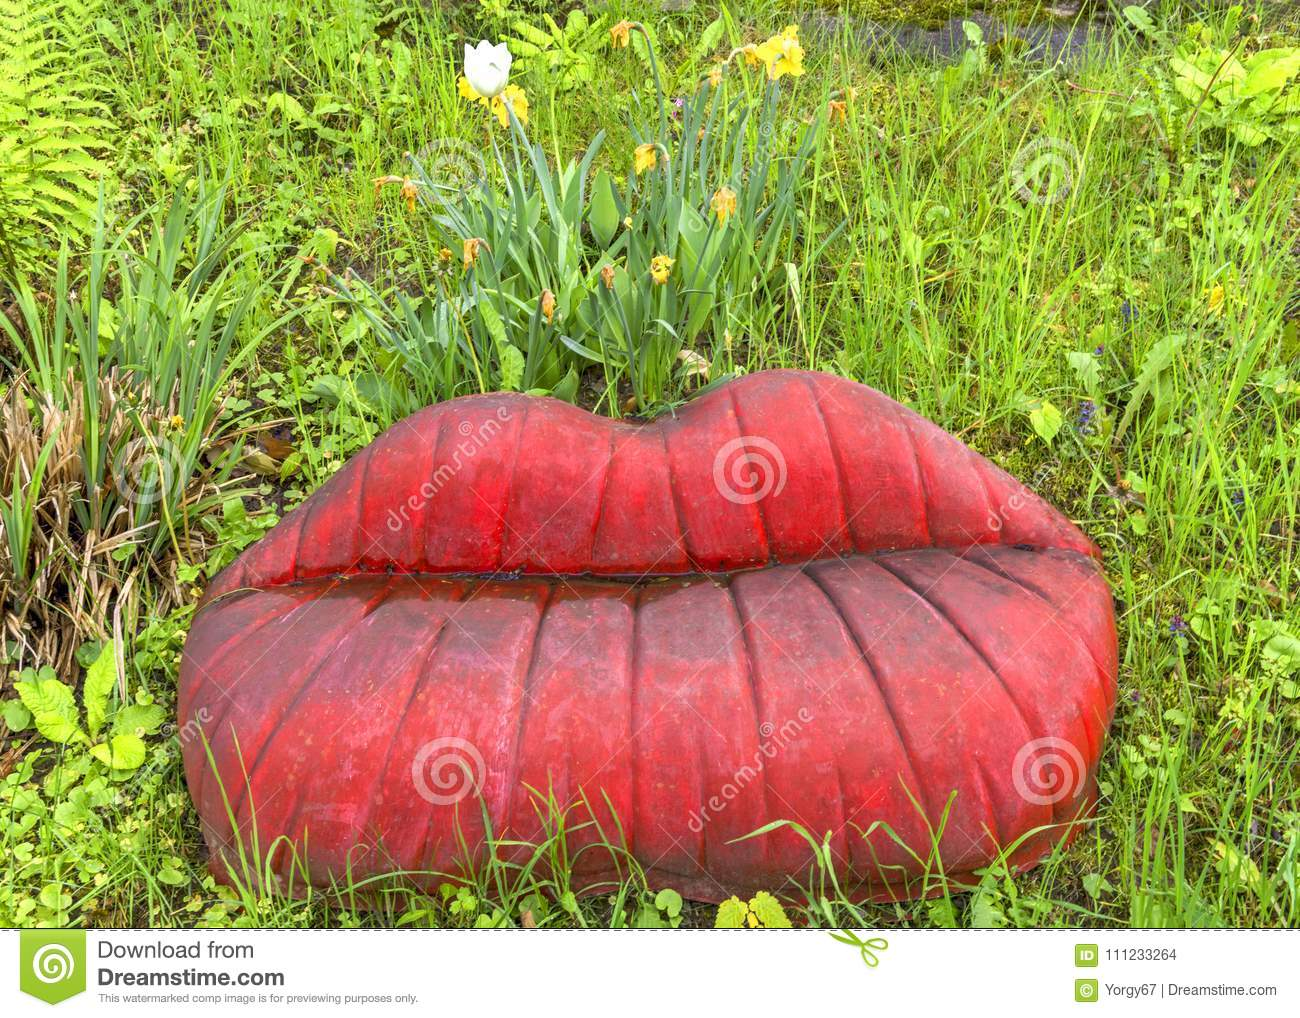 Lips shaped bench stock photo  Image of shaped, cute - 111233264